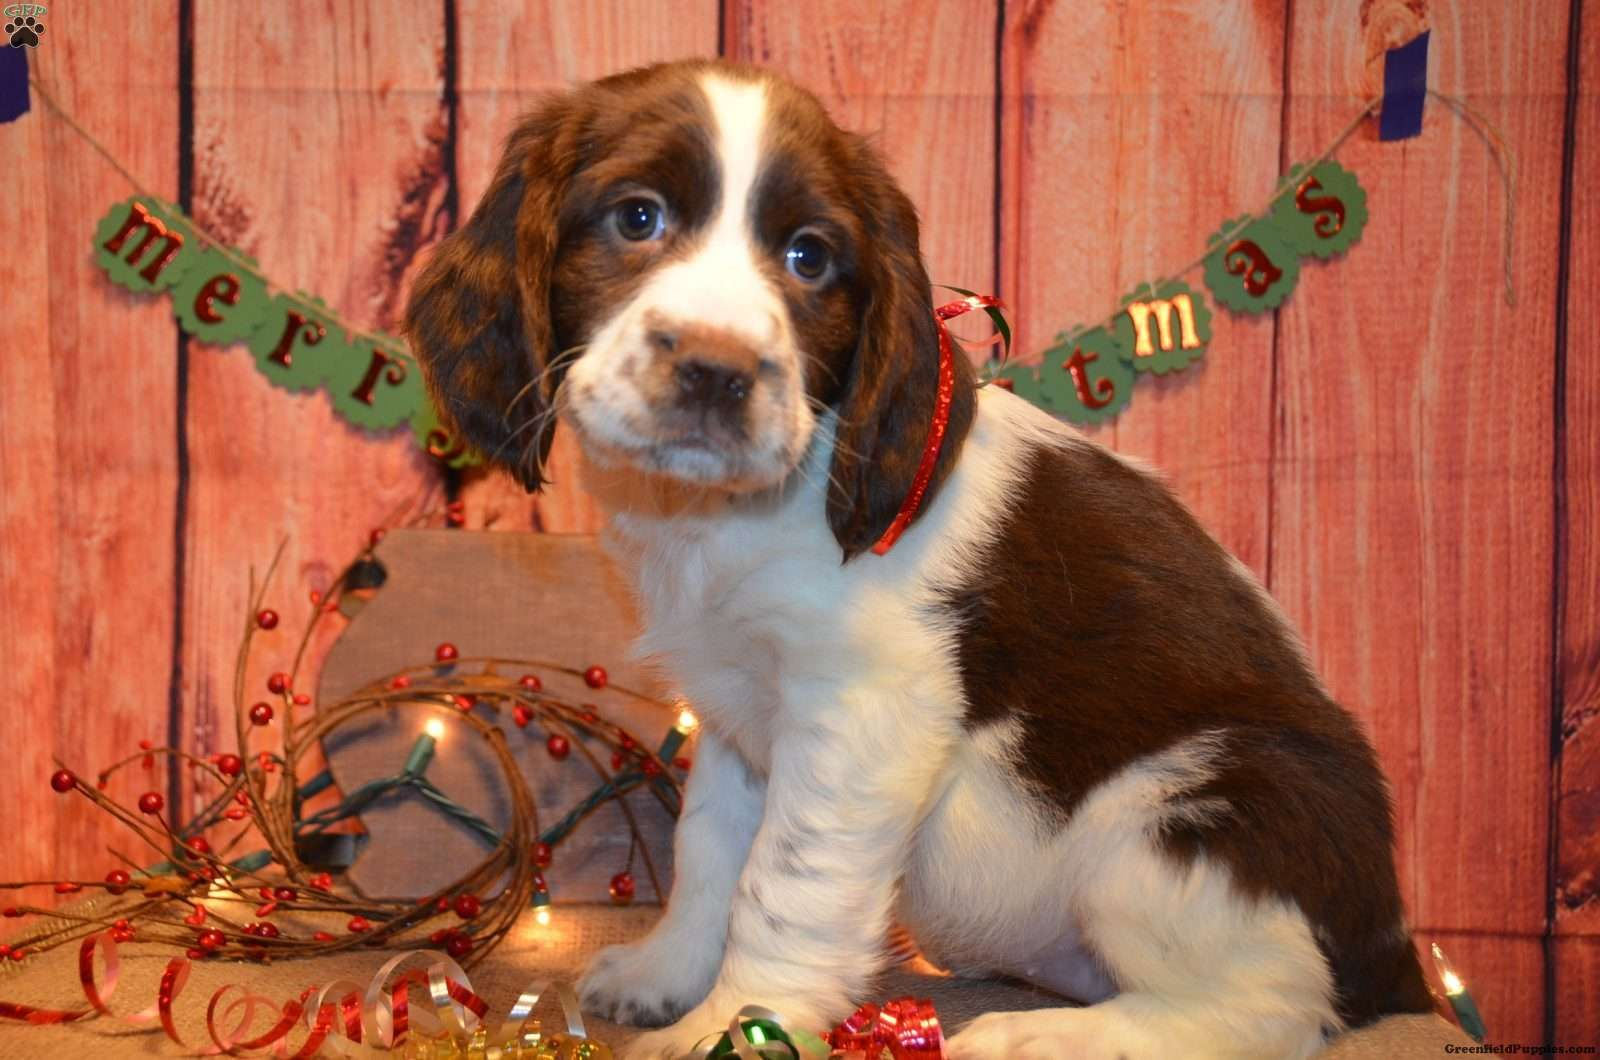 Georgia English Springer Spaniel Puppy For Sale In Ohio English Springer Spaniel Puppy Spaniel Puppies For Sale Springer Spaniel Puppies